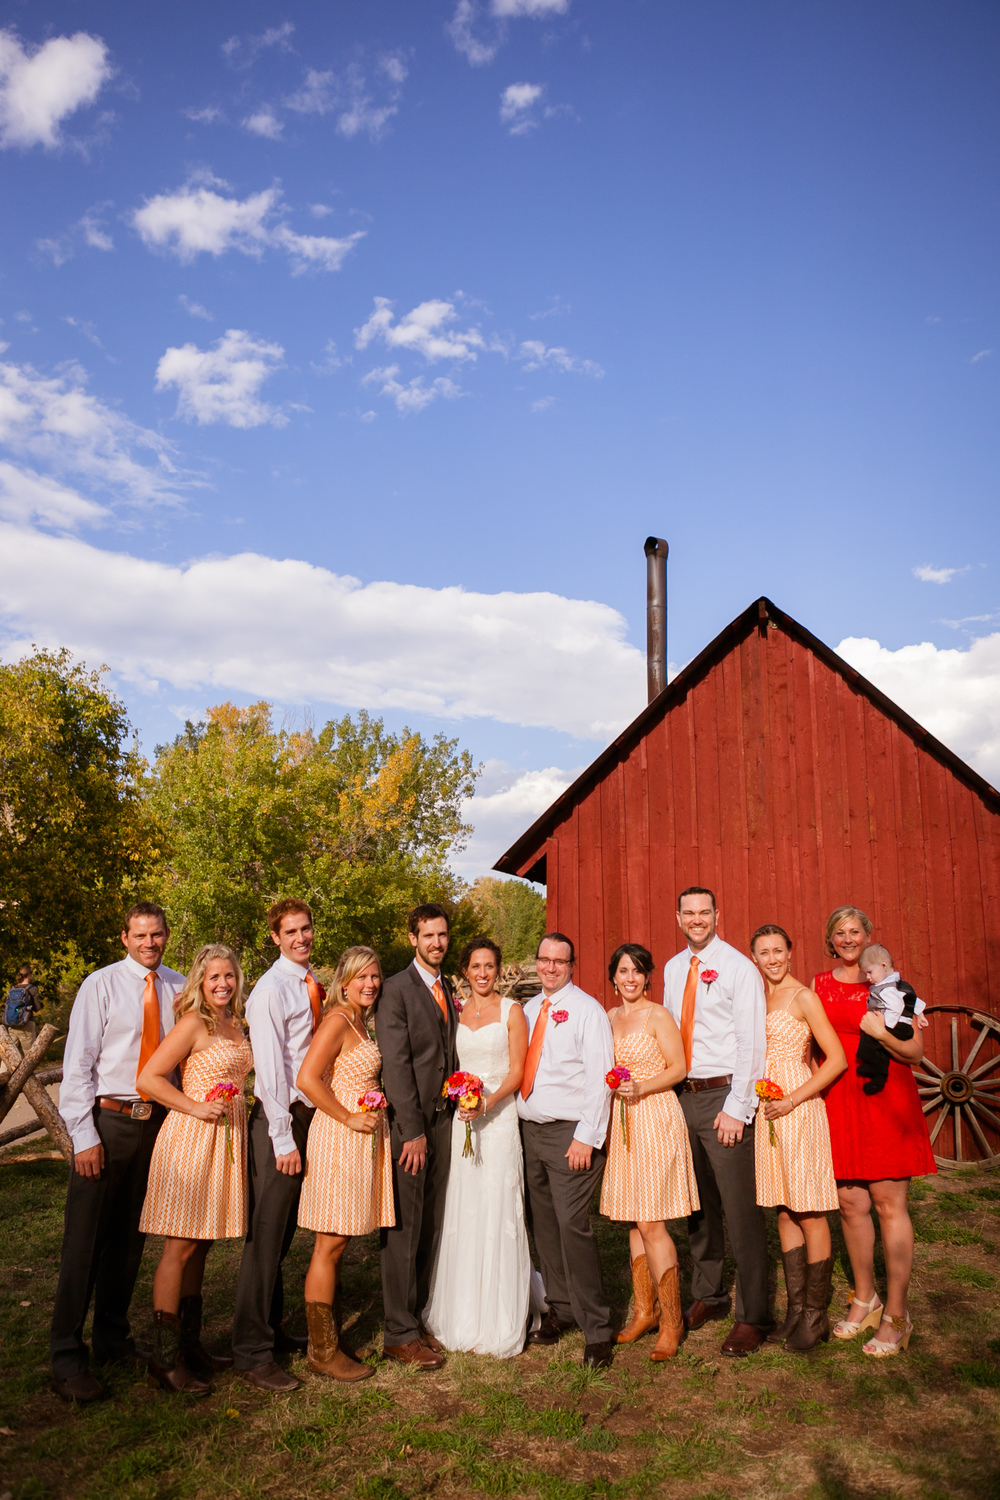 Coal_Creek_Canyon_Wedding_058.JPG